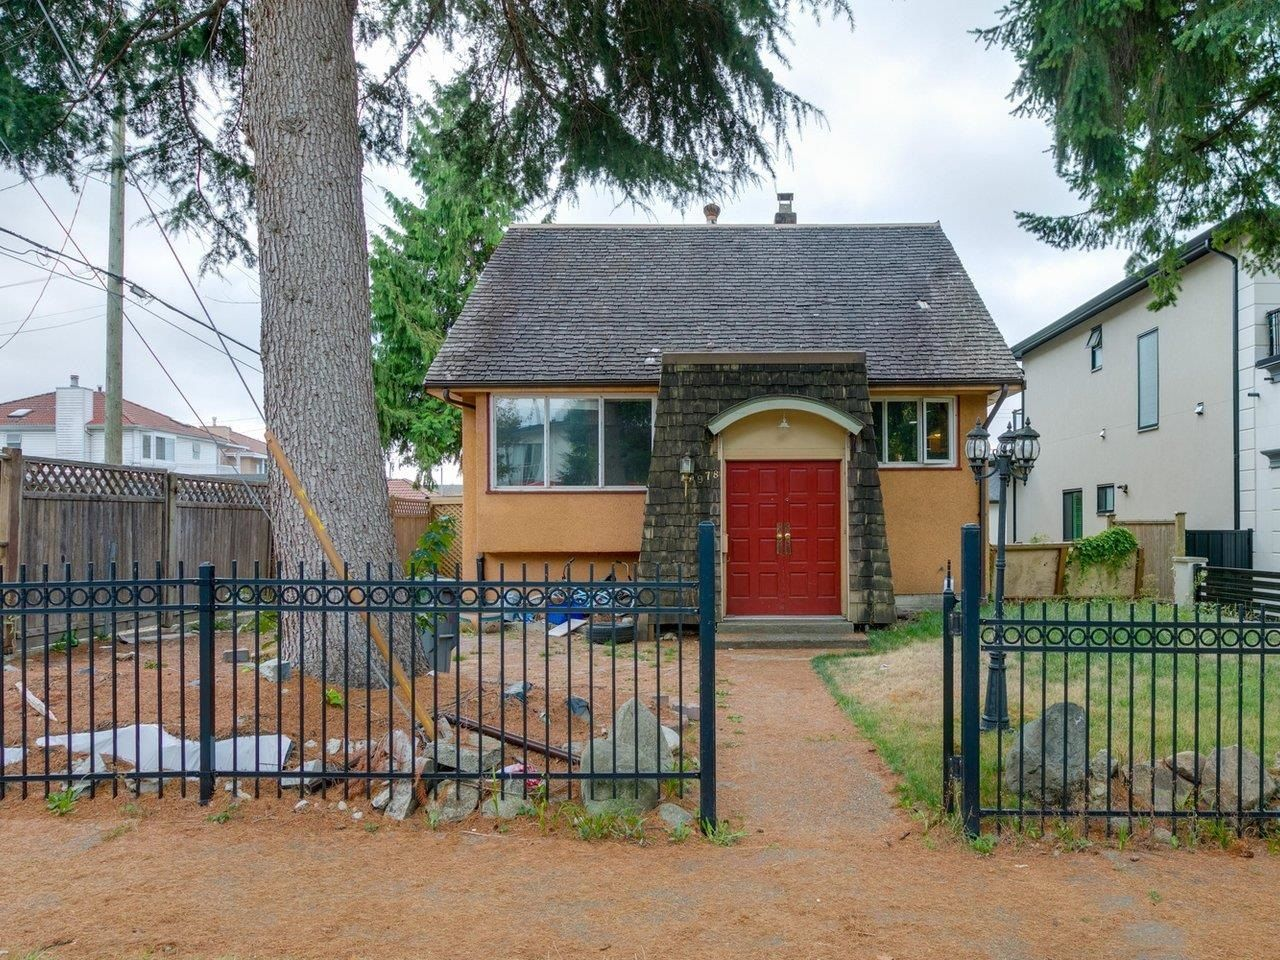 Main Photo: 1978 NASSAU Drive in Vancouver: Fraserview VE House for sale (Vancouver East)  : MLS®# R2619446